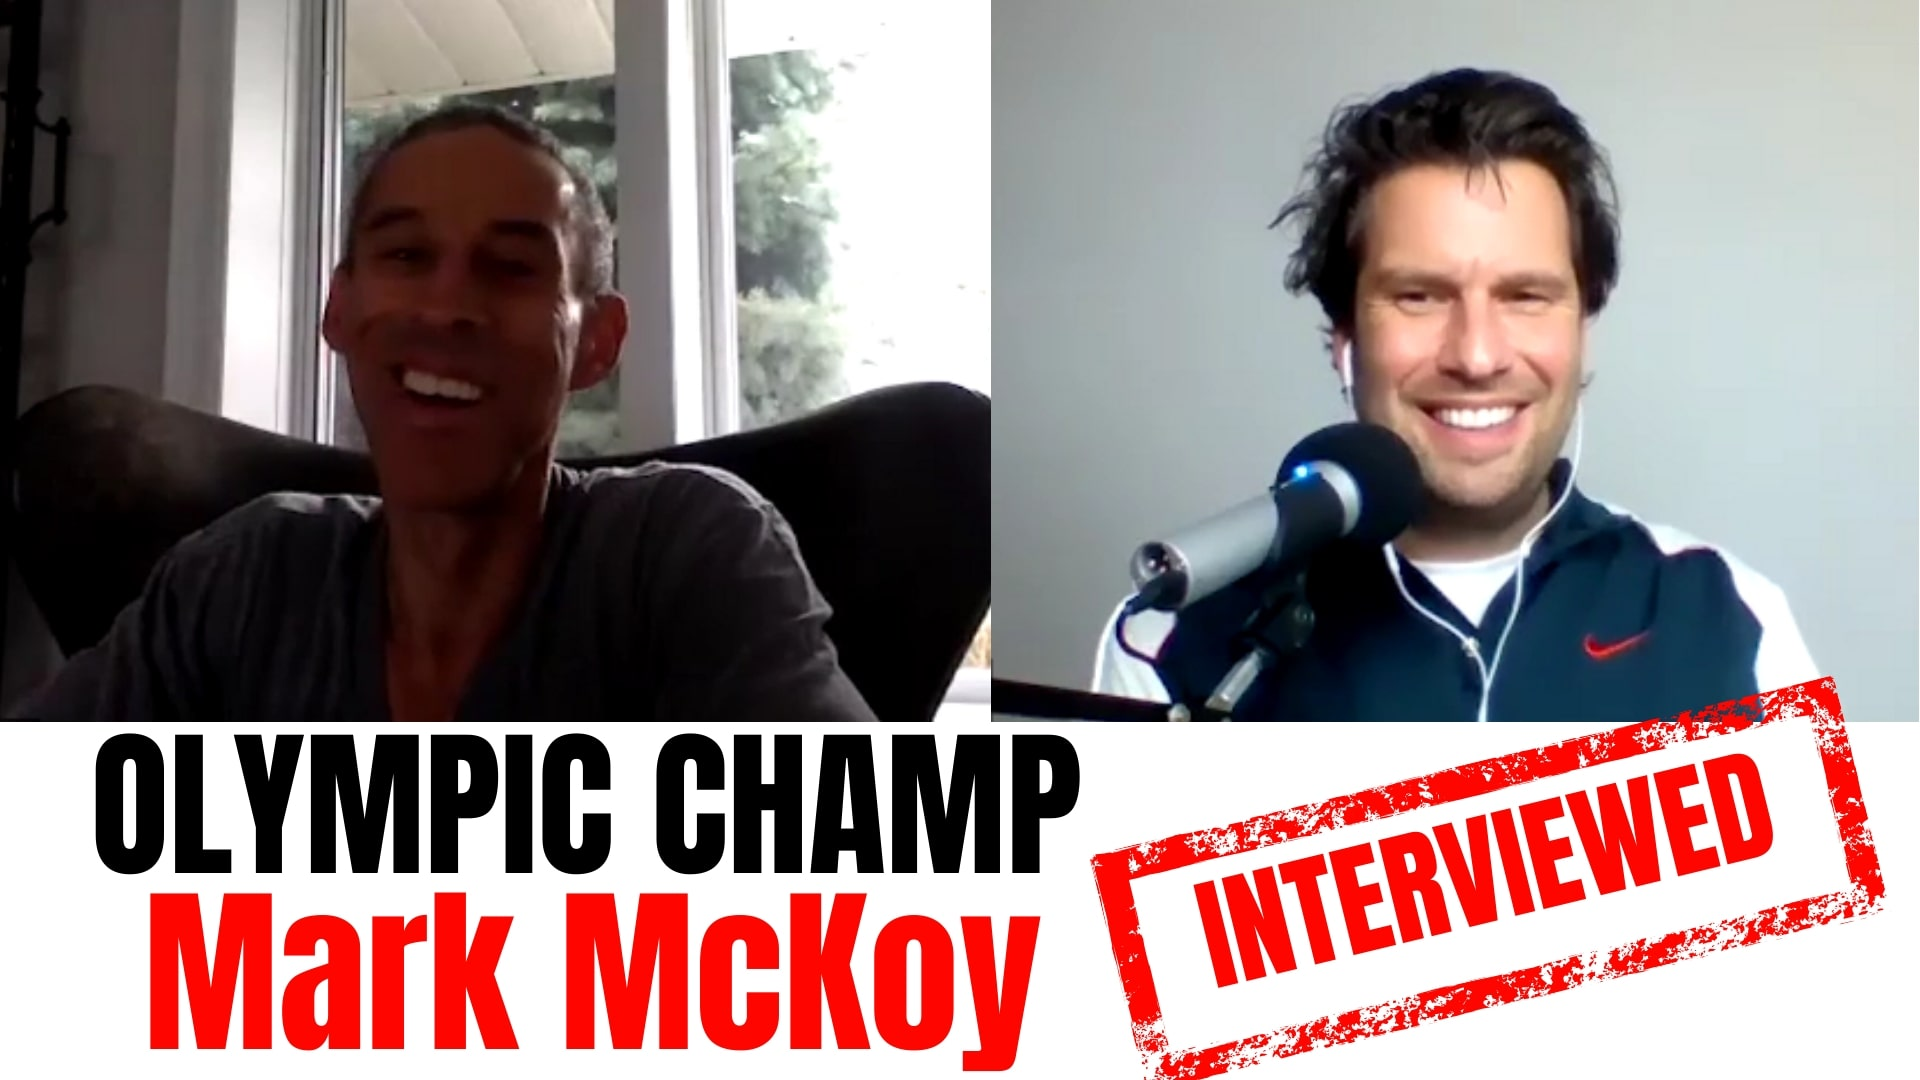 Mark McKoy interview Mark McKoy track and field Mark McKoy 110 meter hurdles